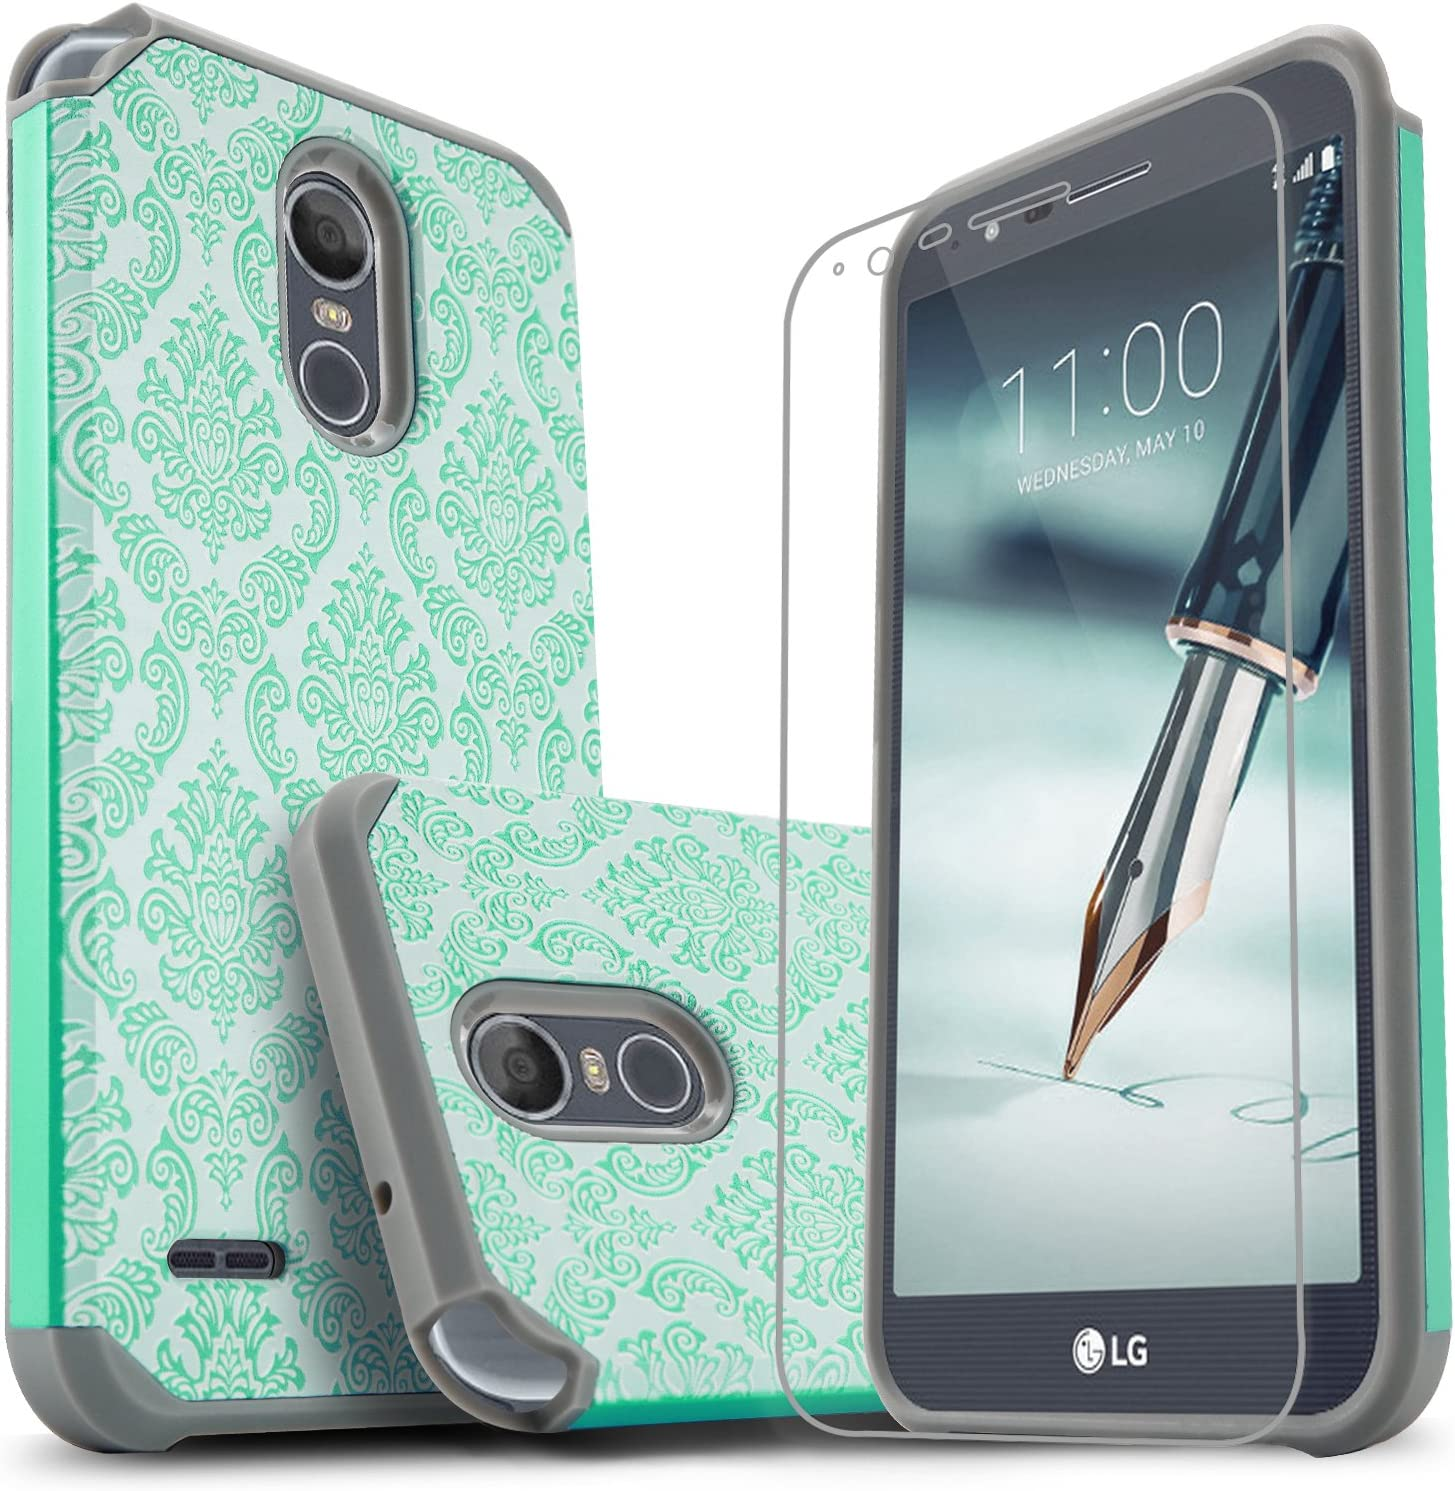 LG Stylo 3 Case, LG Stylo 3 Plus Case, Starshop [Shock Absorption] Dual Layers Impact Advanced Protective Cover with [Premium HD Screen Protector Included] for LG Stylo 3 - Light Blue Lace